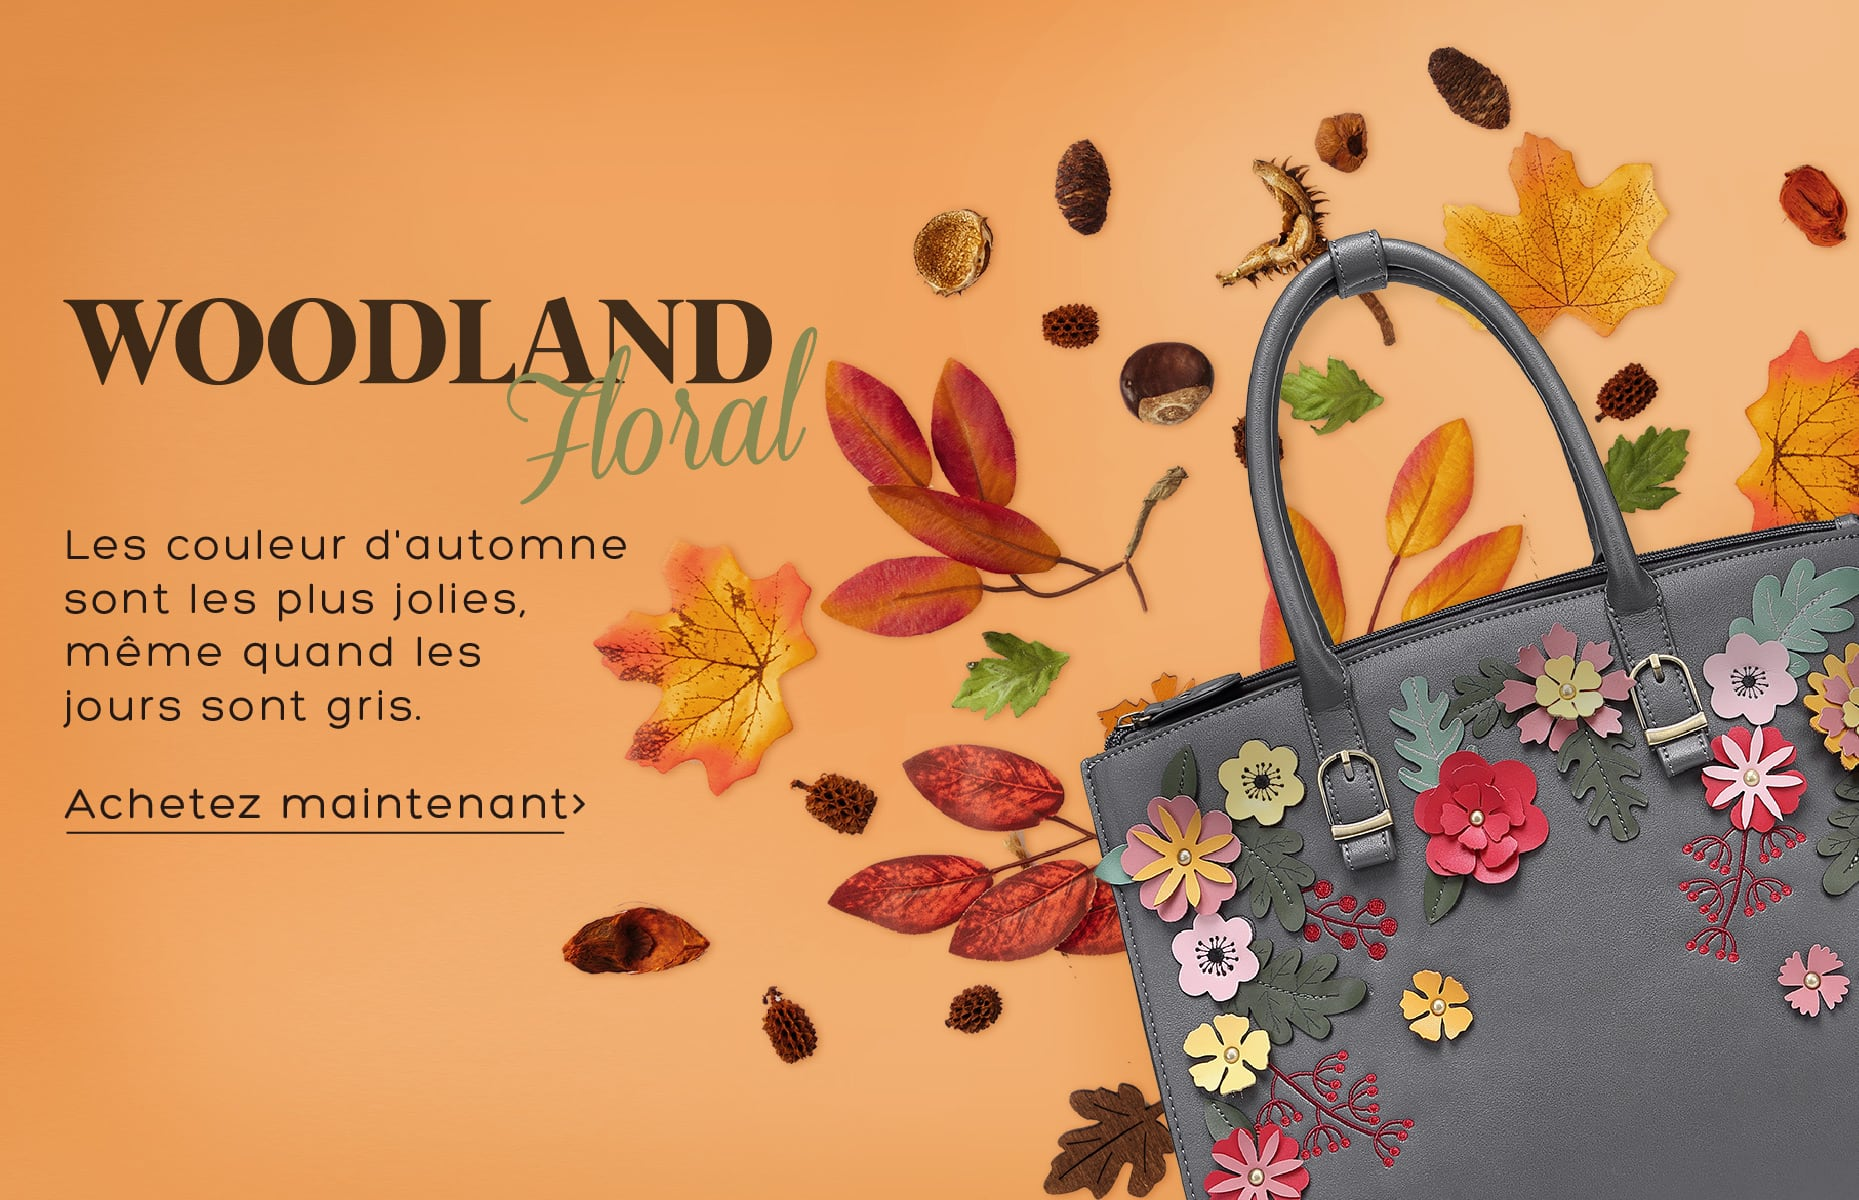 Woodland Floral Bags and accessories Vendula London vegan certified